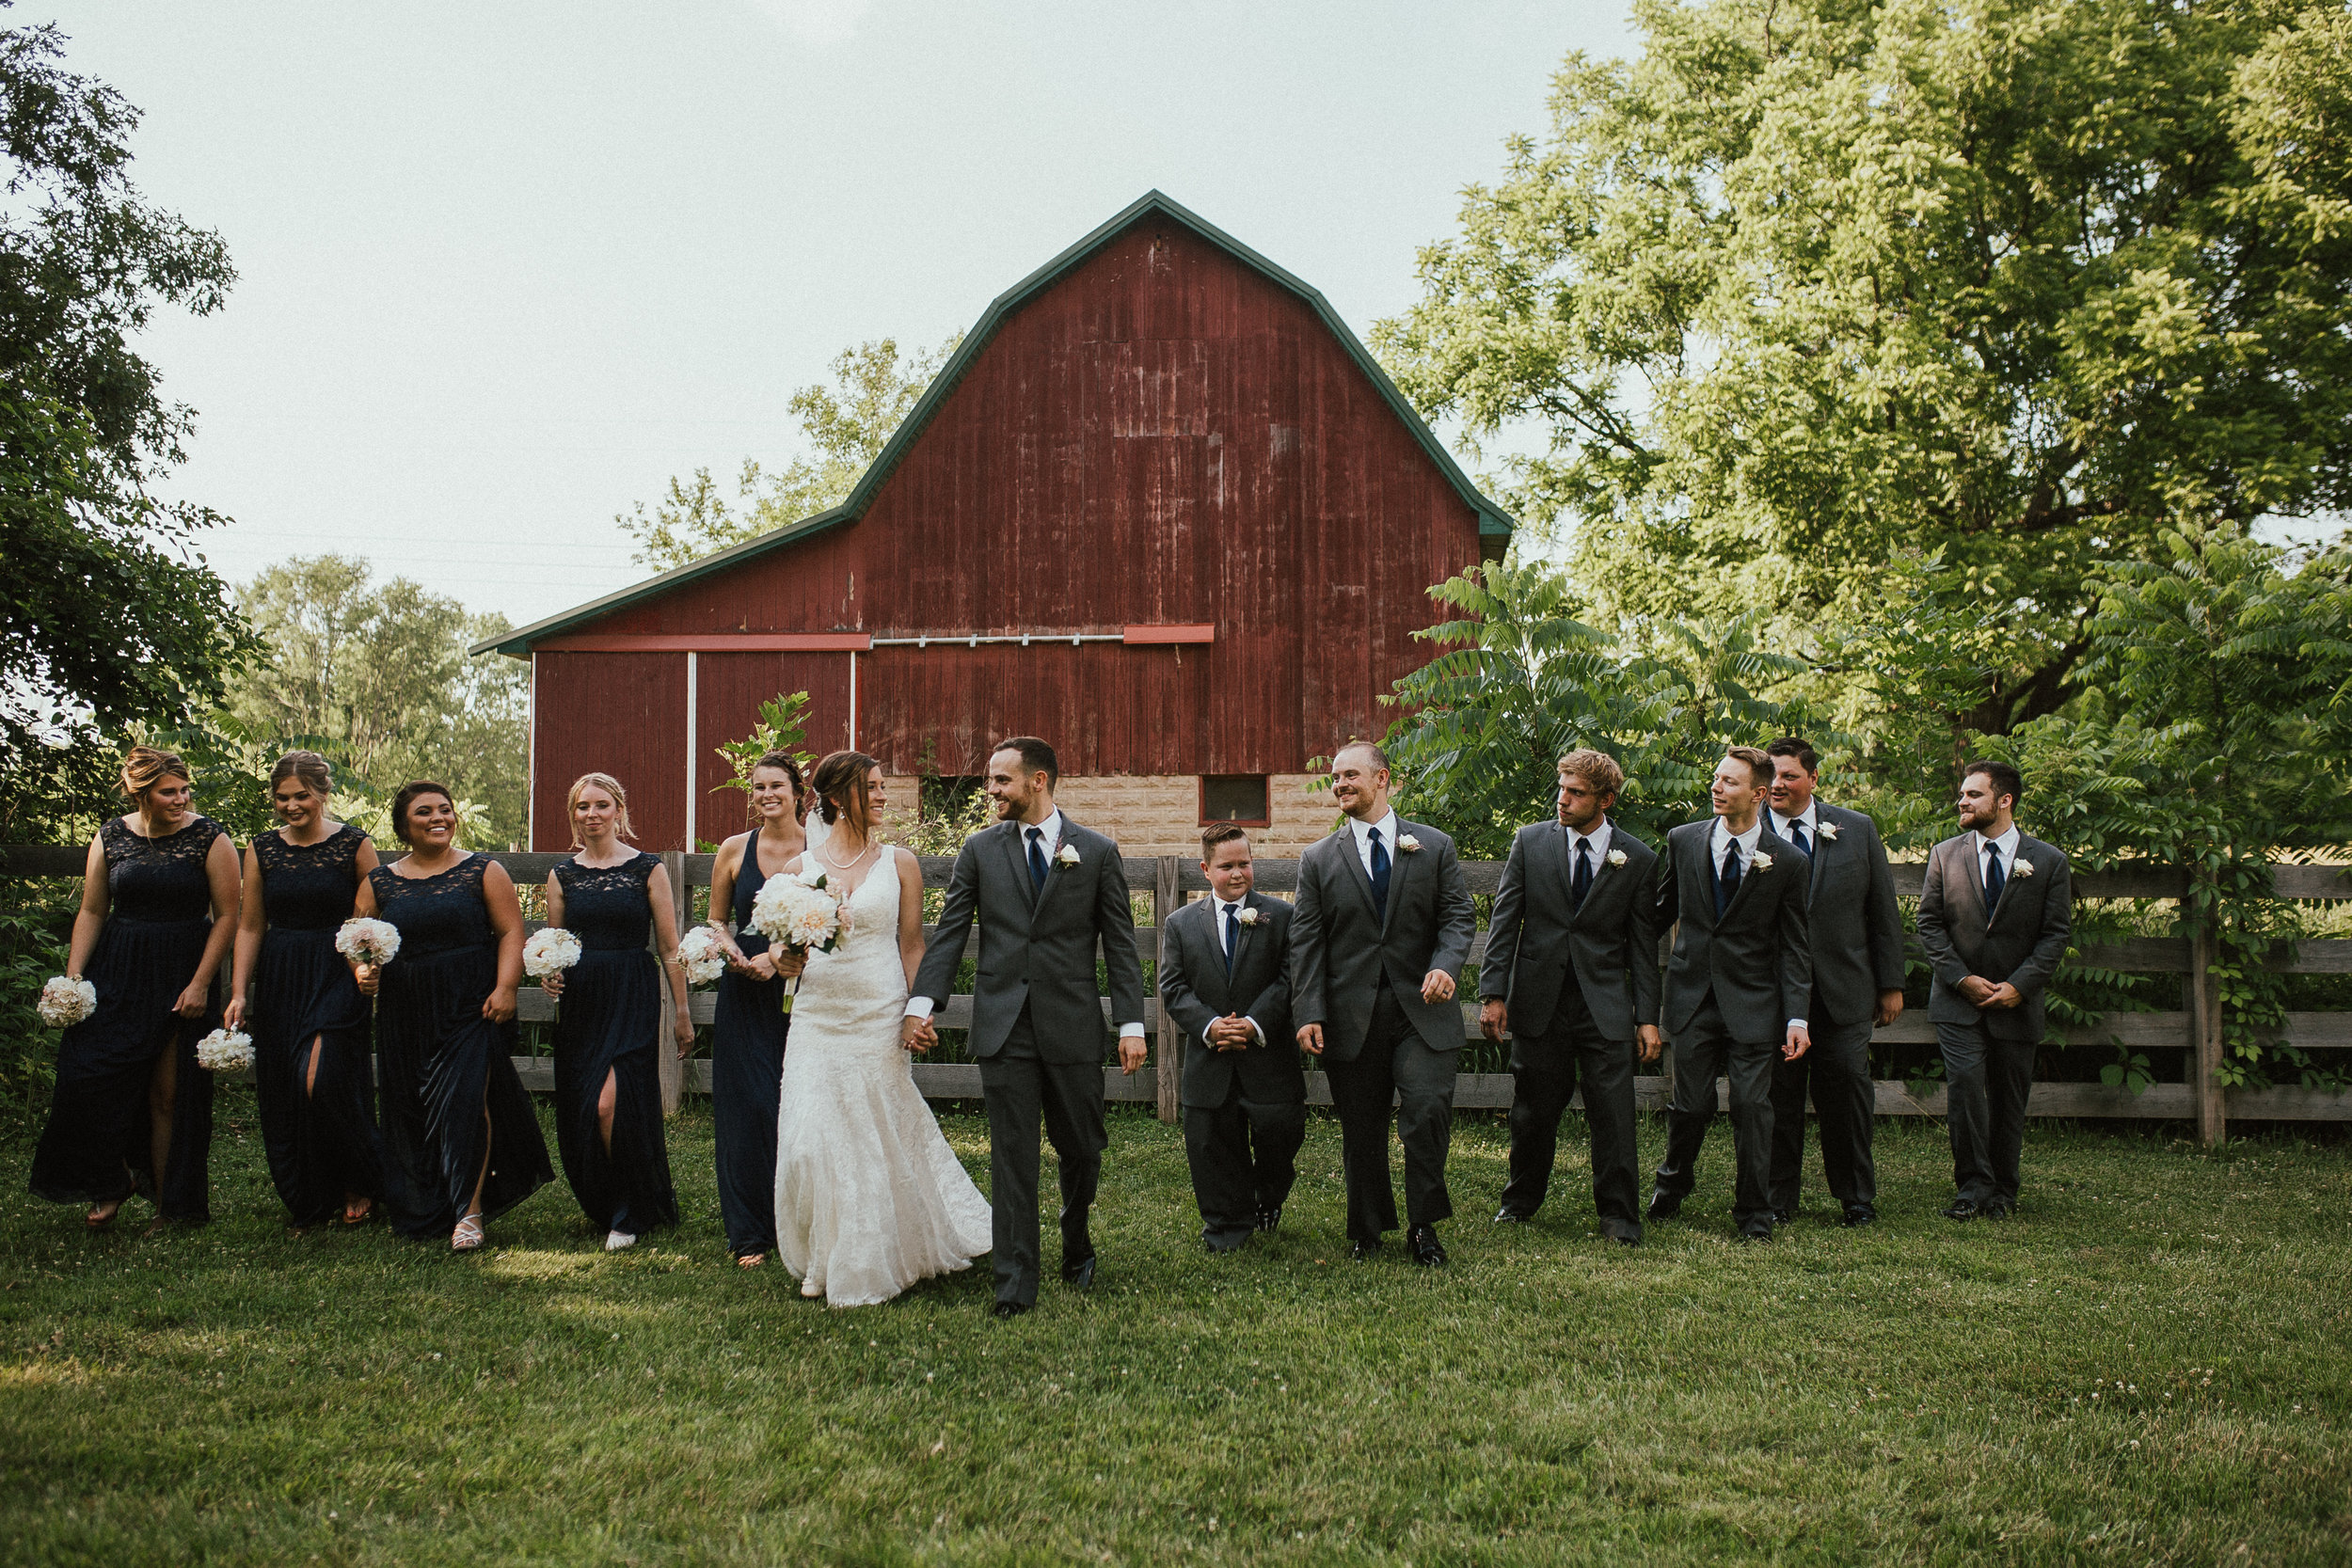 EADS-WEDDING-REAGANLYNNPHOTOGRAPHY-ANDERSON-INDIANA-29.jpg